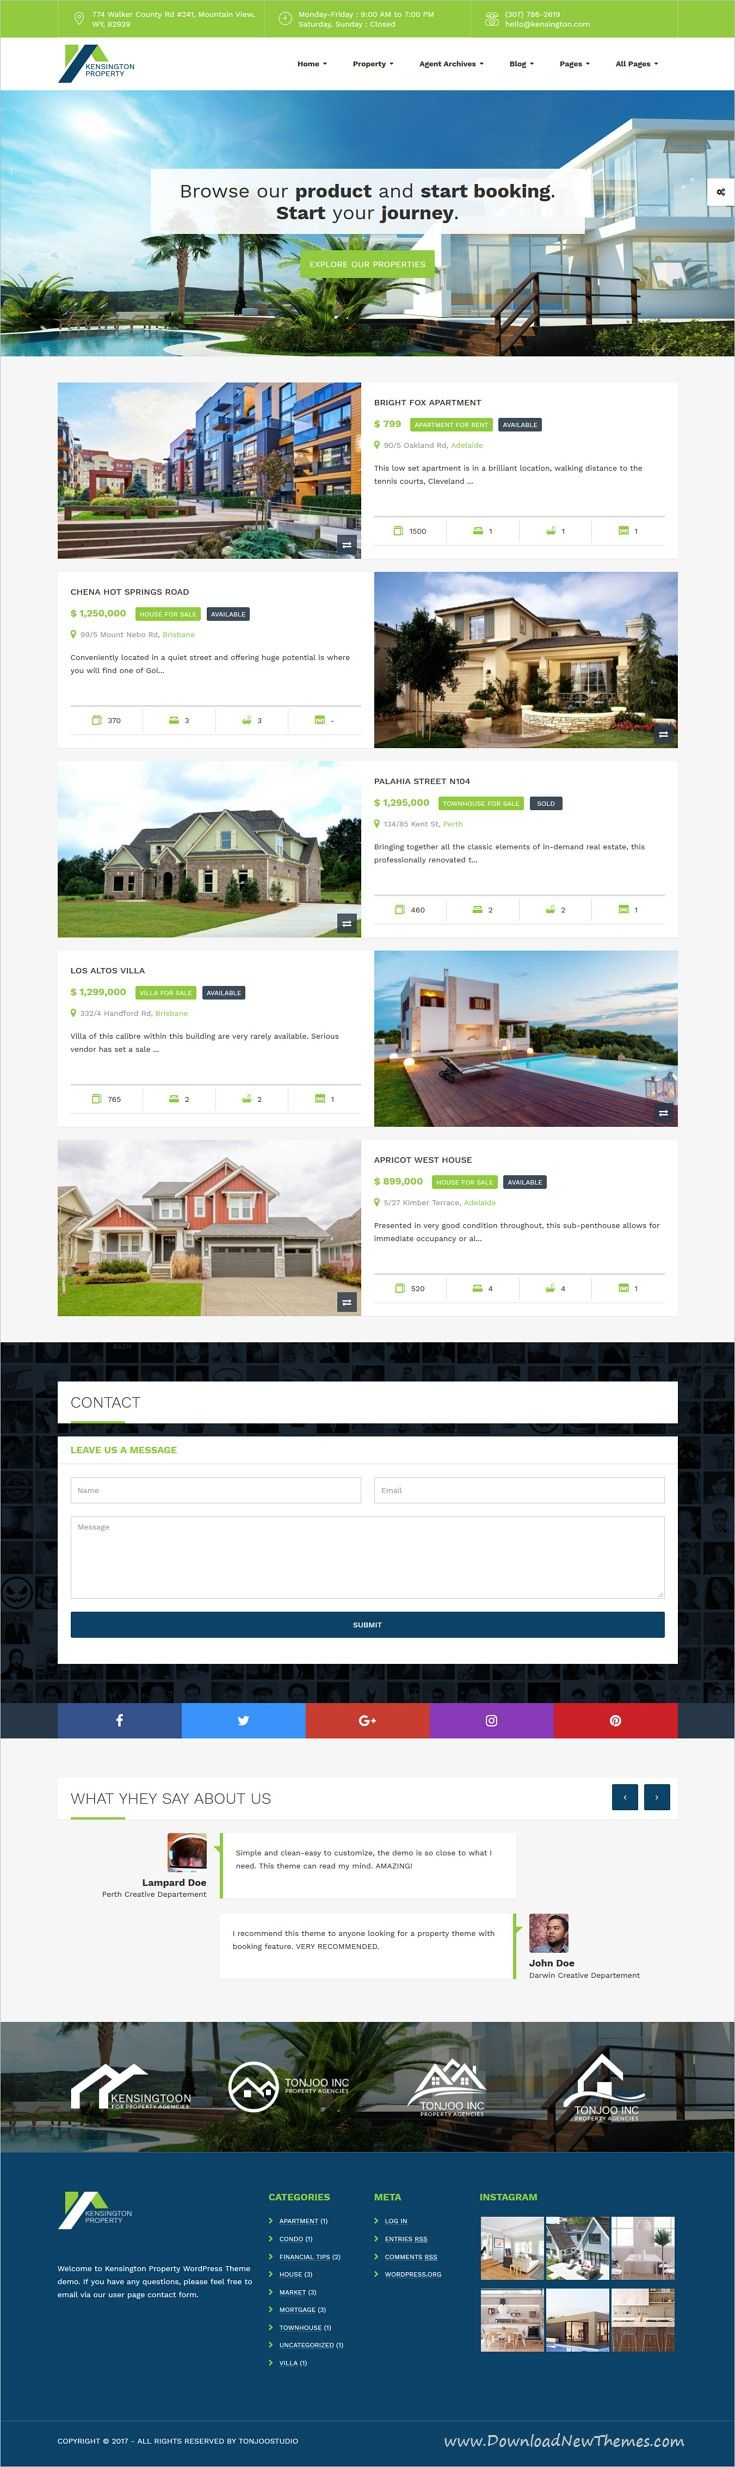 Kensington is clean and modern design 6in1 responsive WordPress #template for #realestate and #property management website to live preview & download click on image or Visit